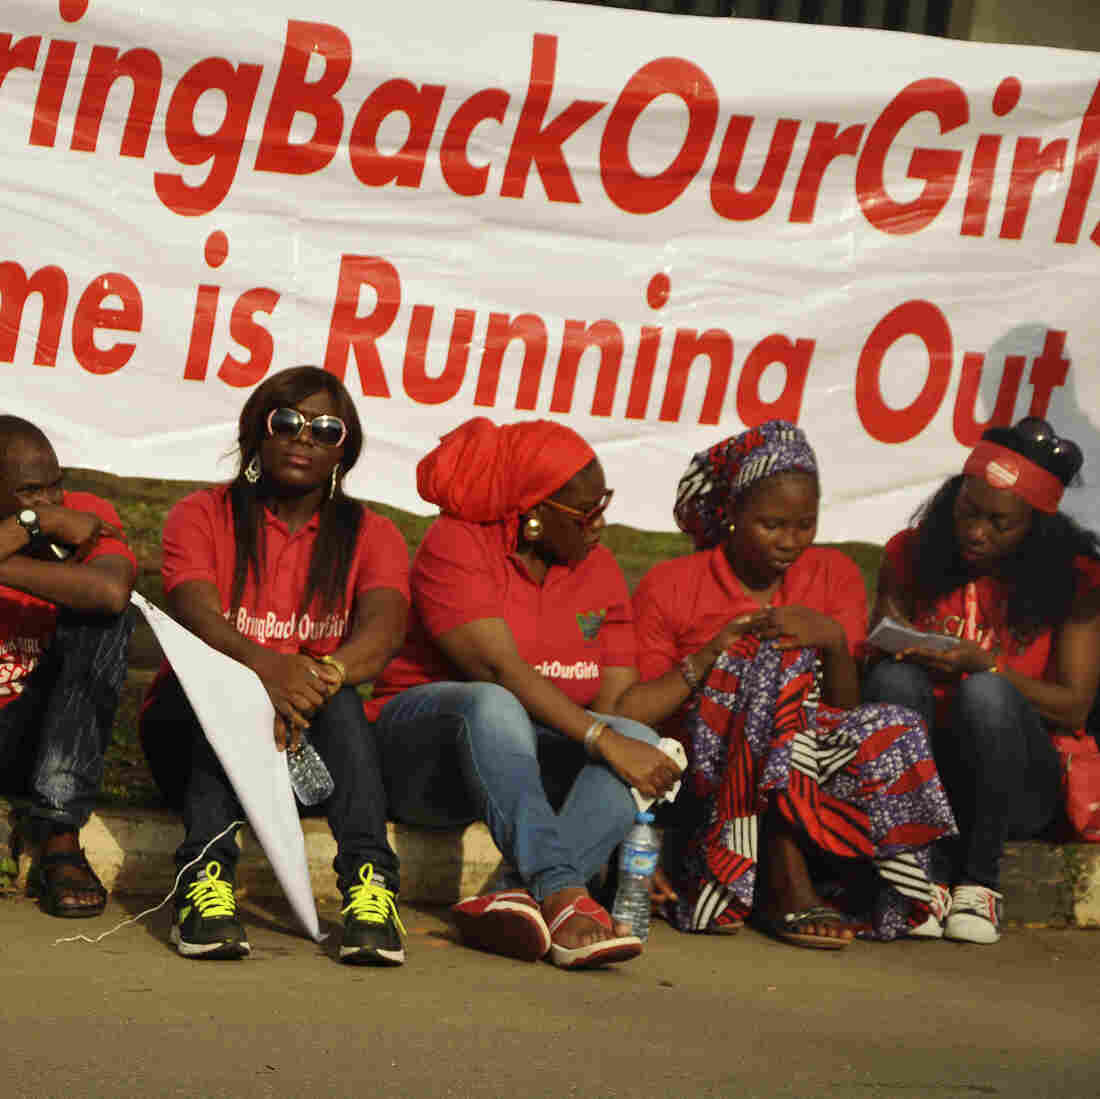 """Members of the Abuja """"Bring Back Our Girls"""" protest group sit during a march in continuation of the Global October movement. Once again, Boko Haram militants are implicated in killings and mass kidnapping in northeastern Nigeria."""